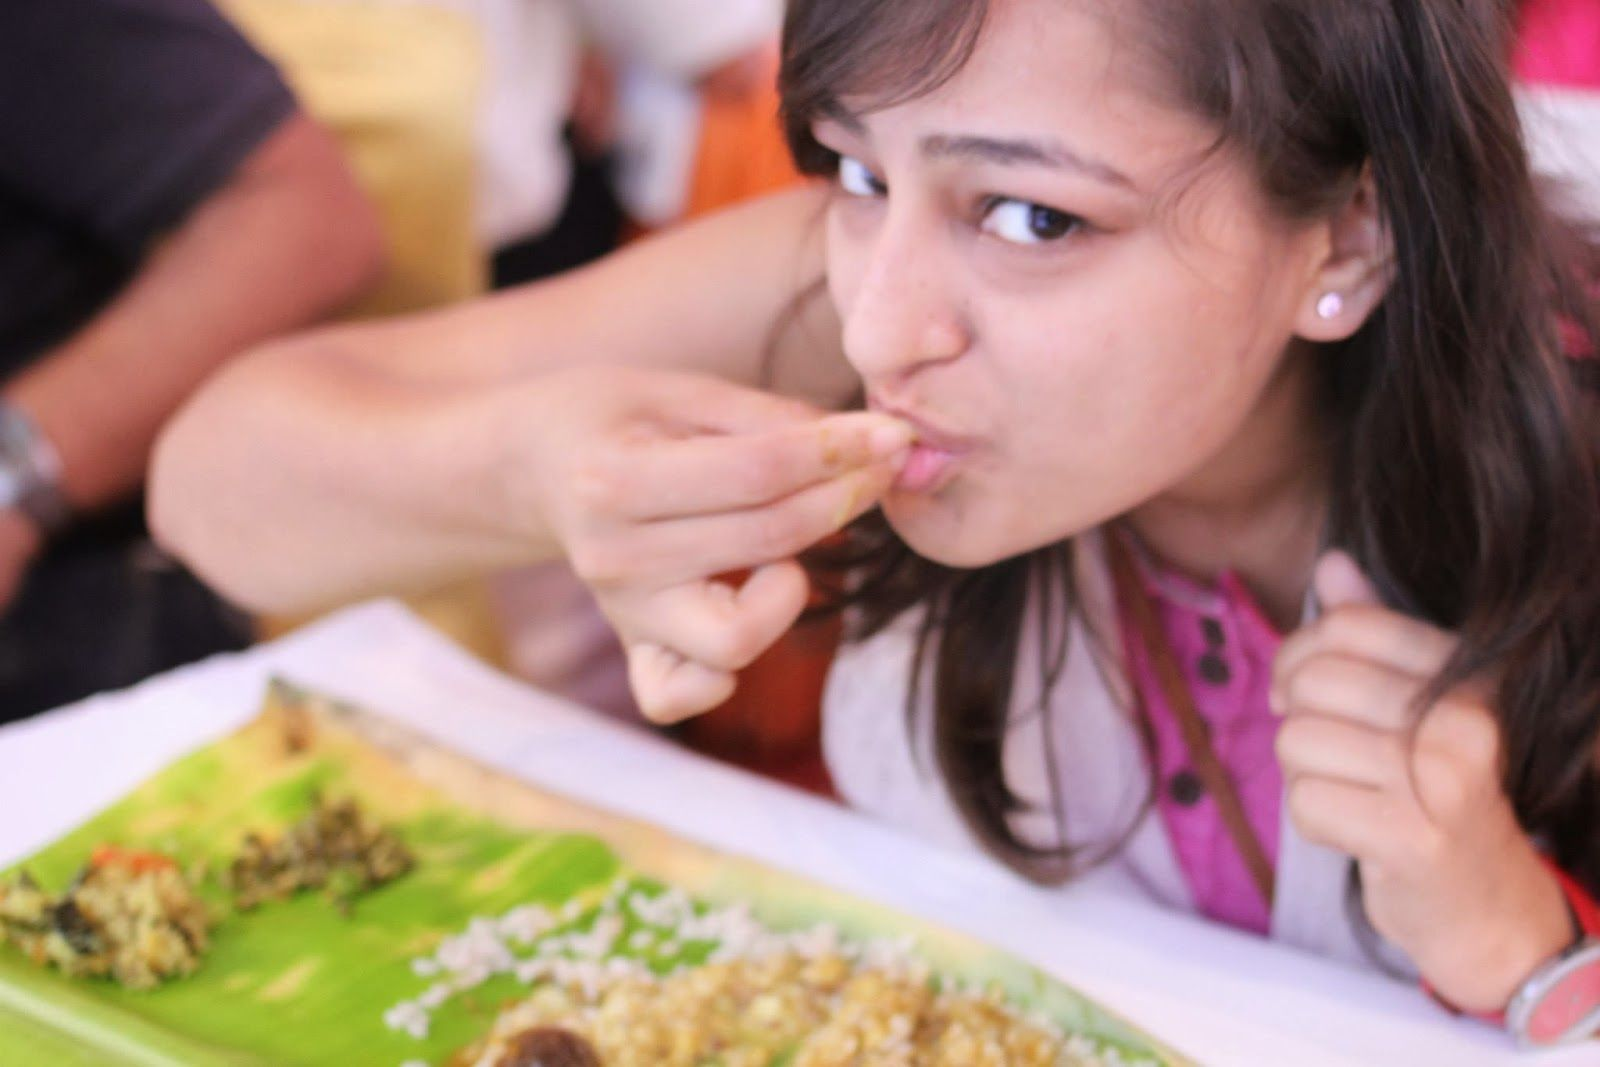 eating with hands